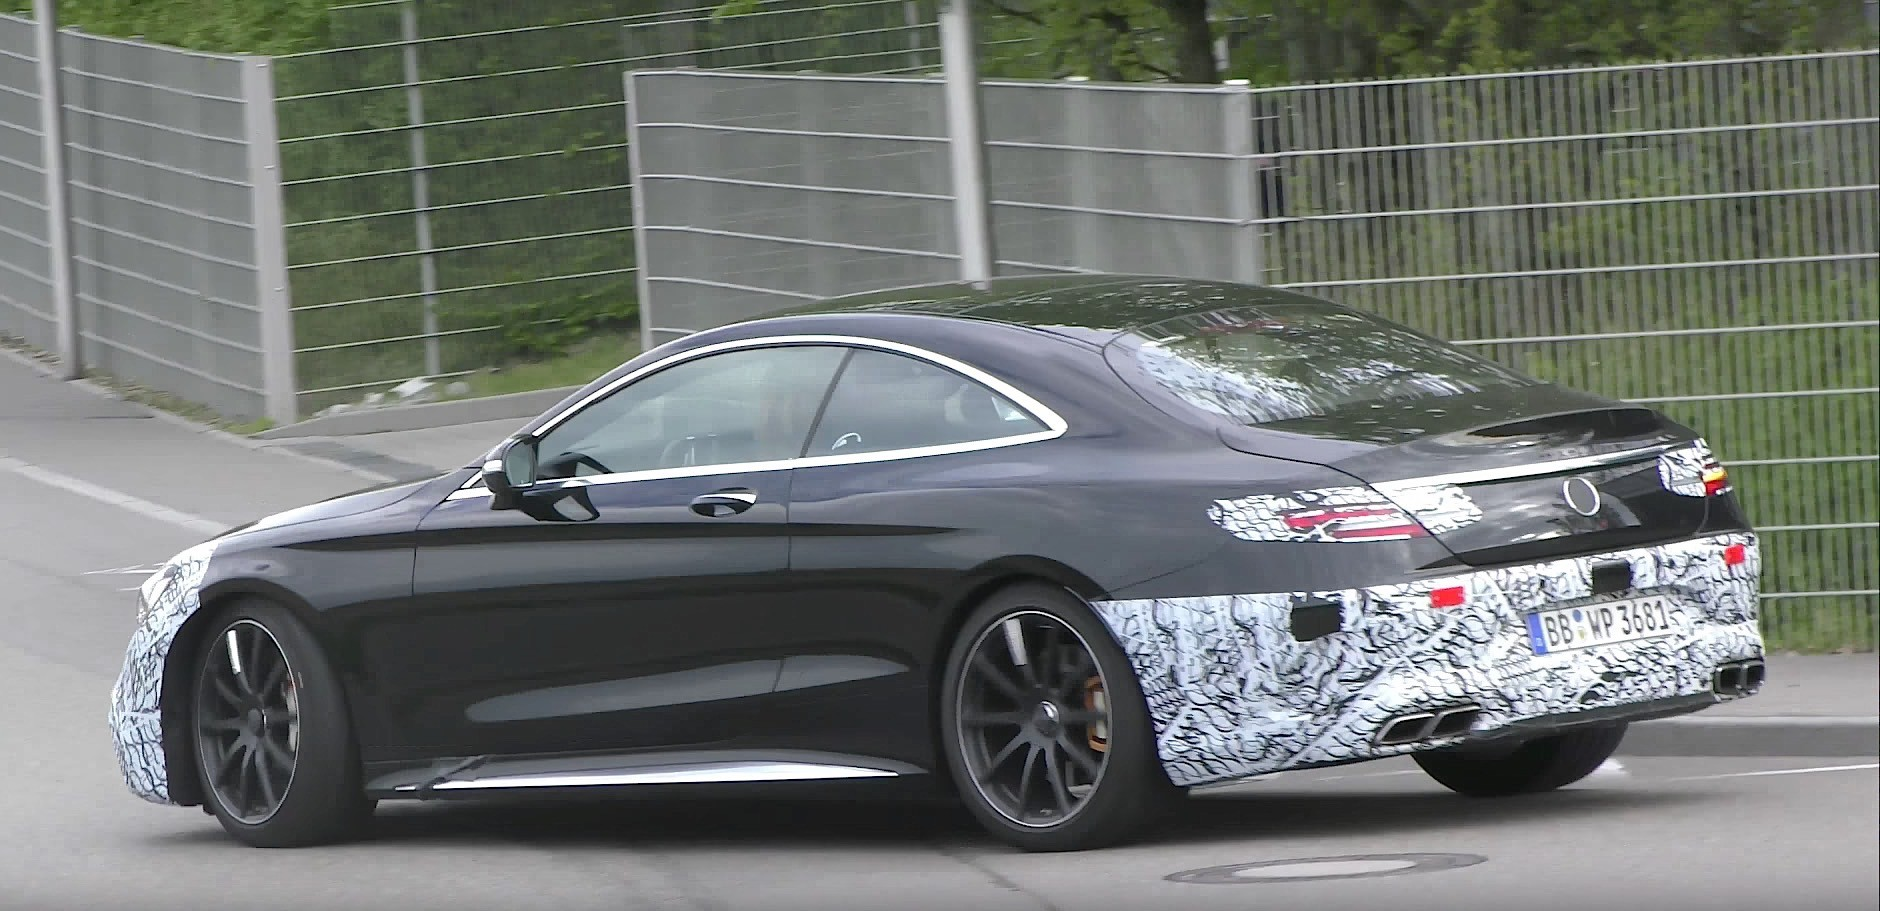 2019 Mercedes Amg S63 Coupe Prototype Gives A Glimpse Of Its New